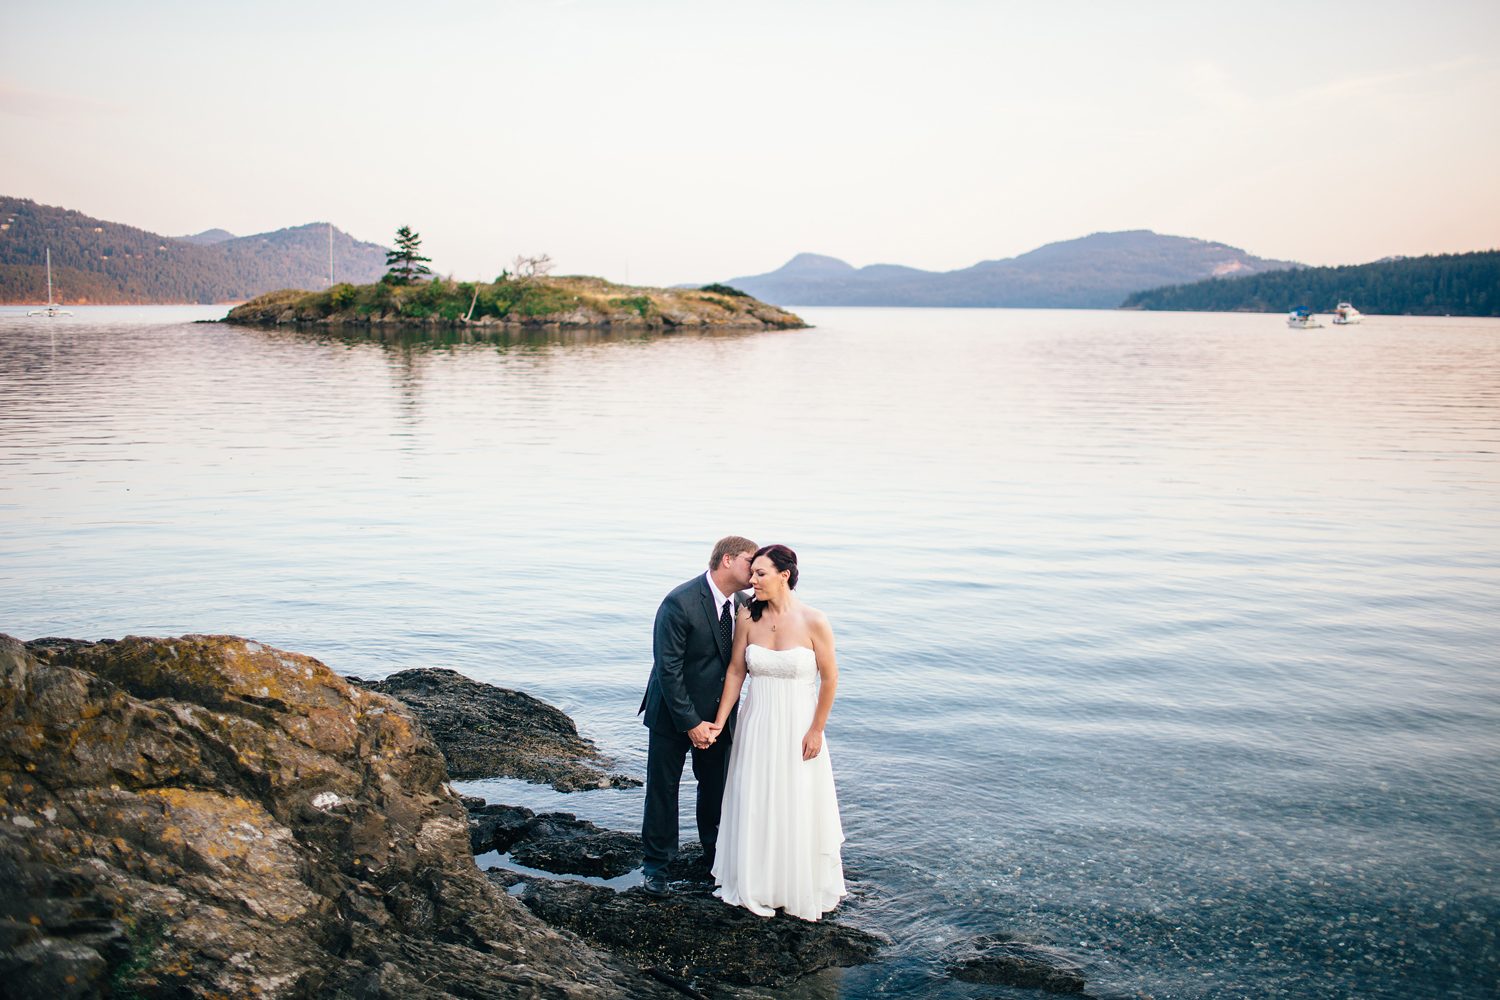 ryan-flynn-photography-best-wedding-photos-2014-0069.JPG